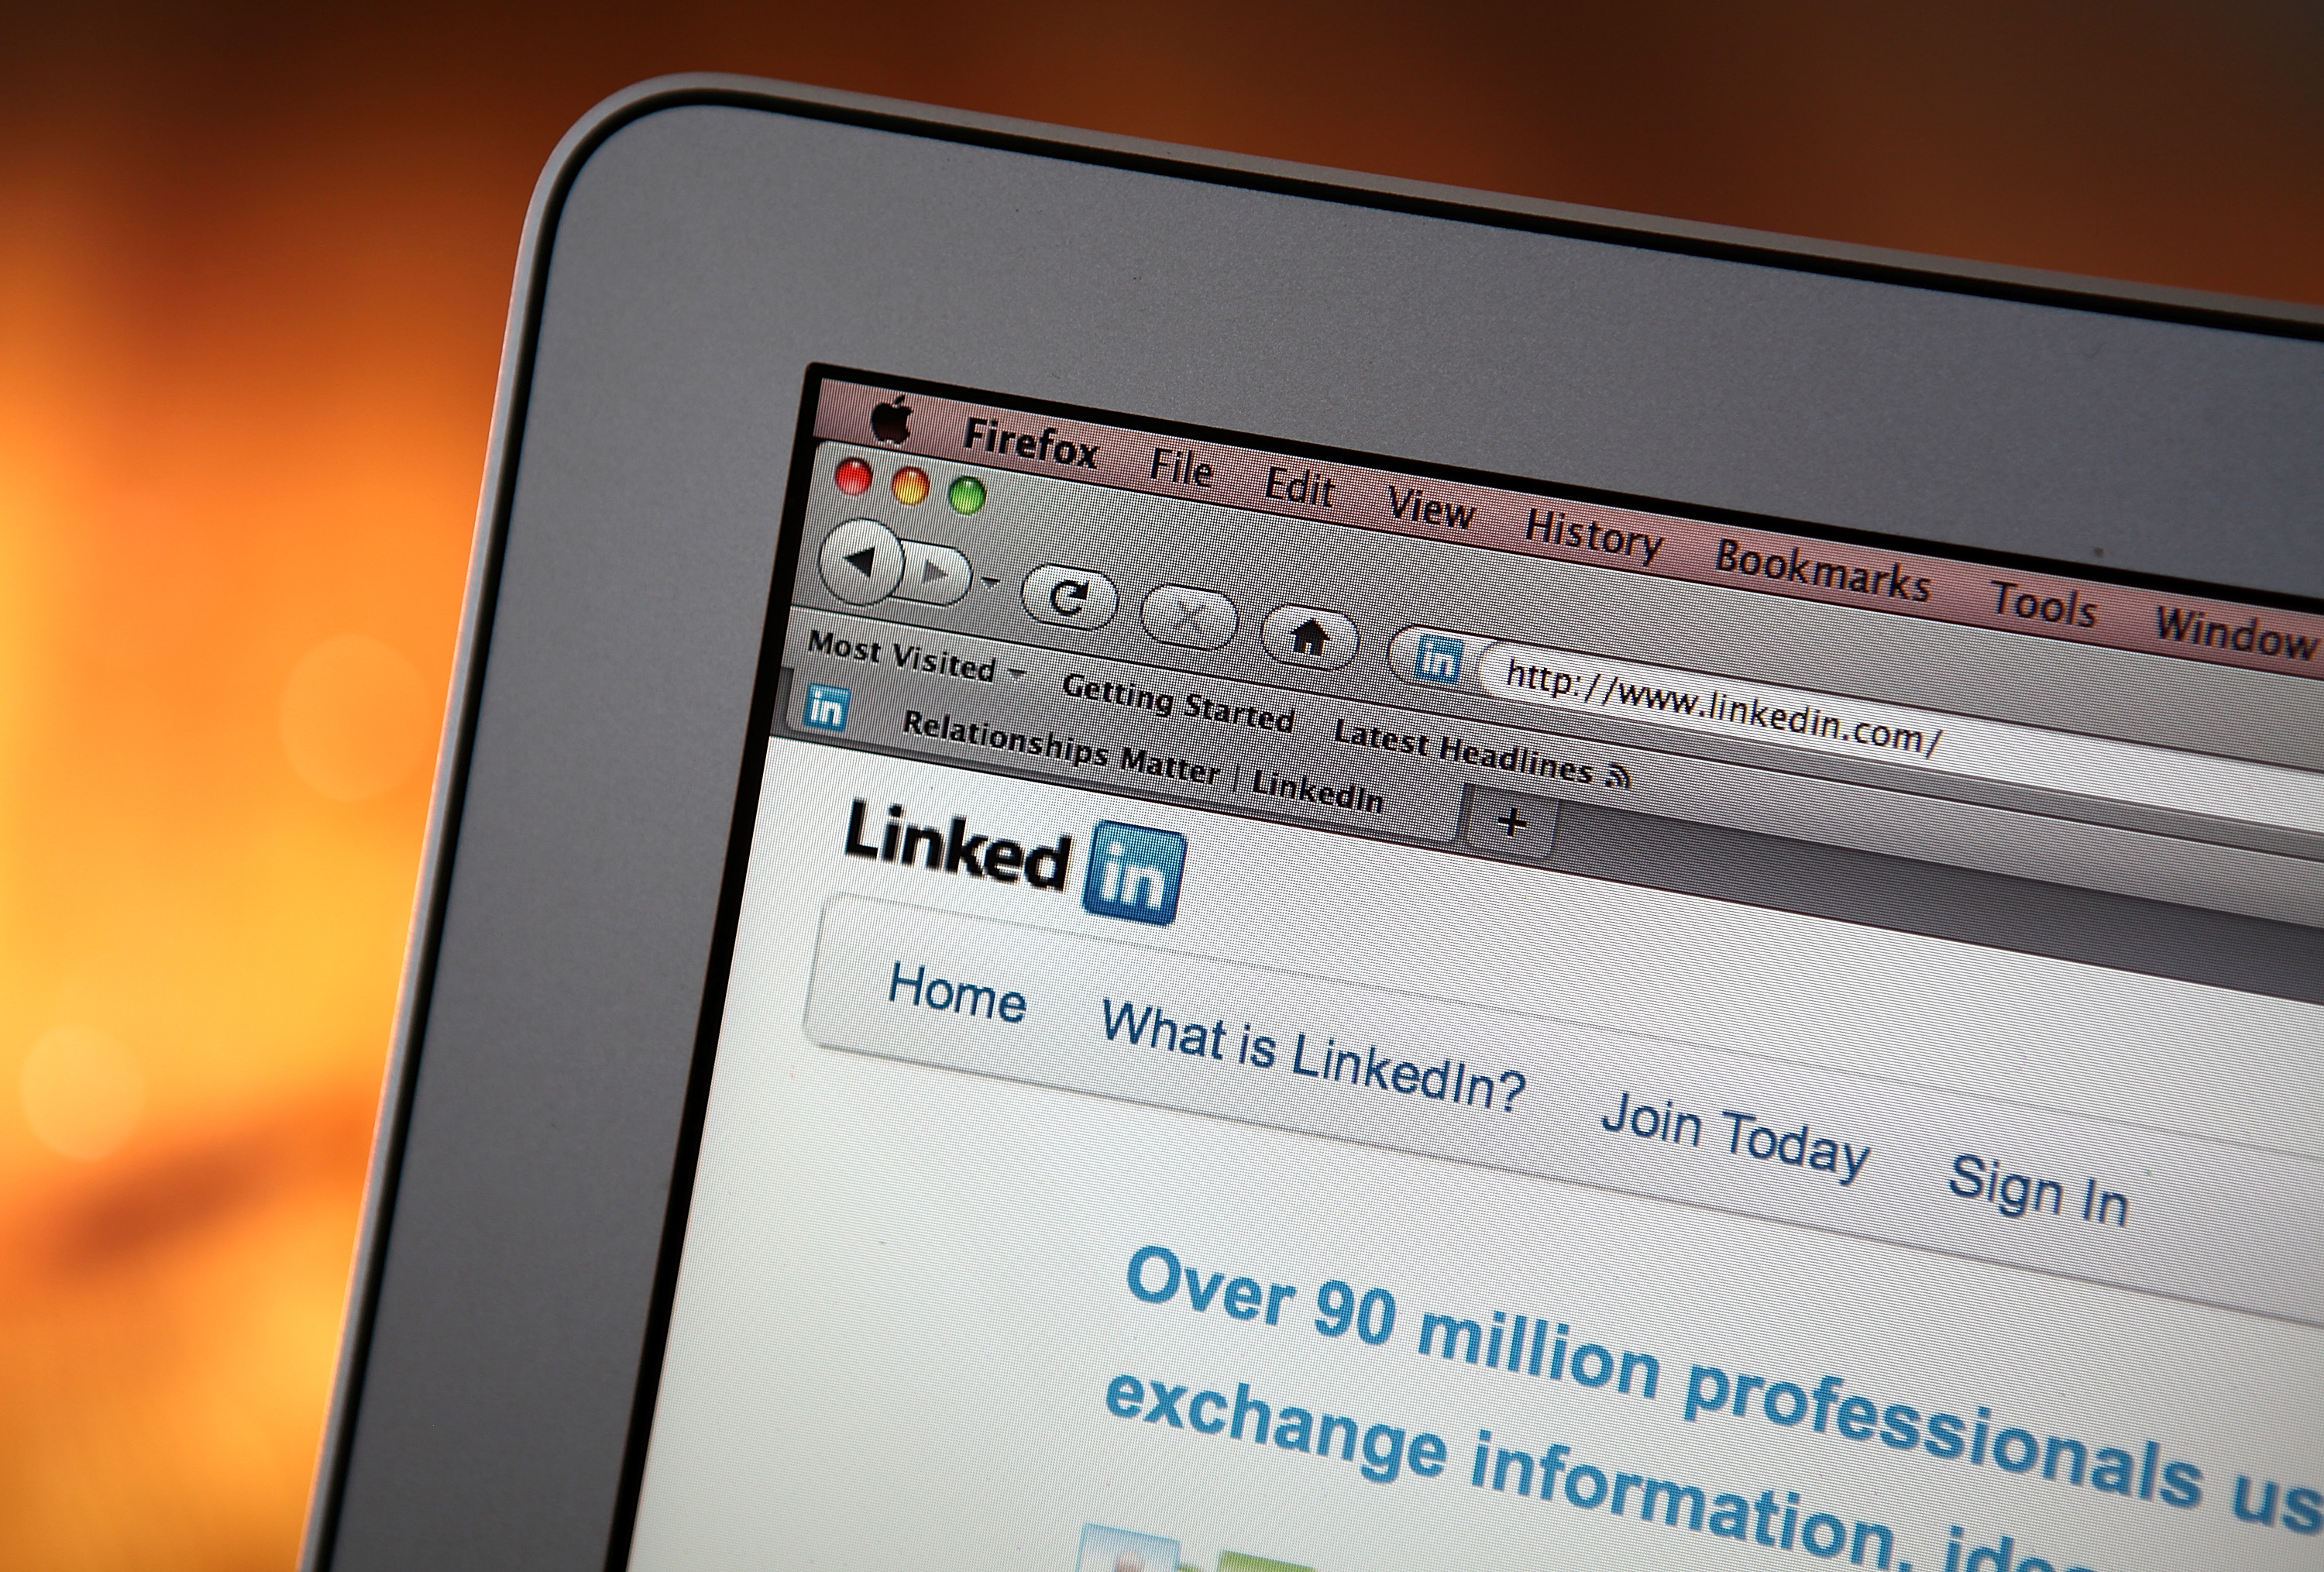 LinkedIn reaches 10 million registered users in Brazil, its third largest market ex aequo with the UK ...